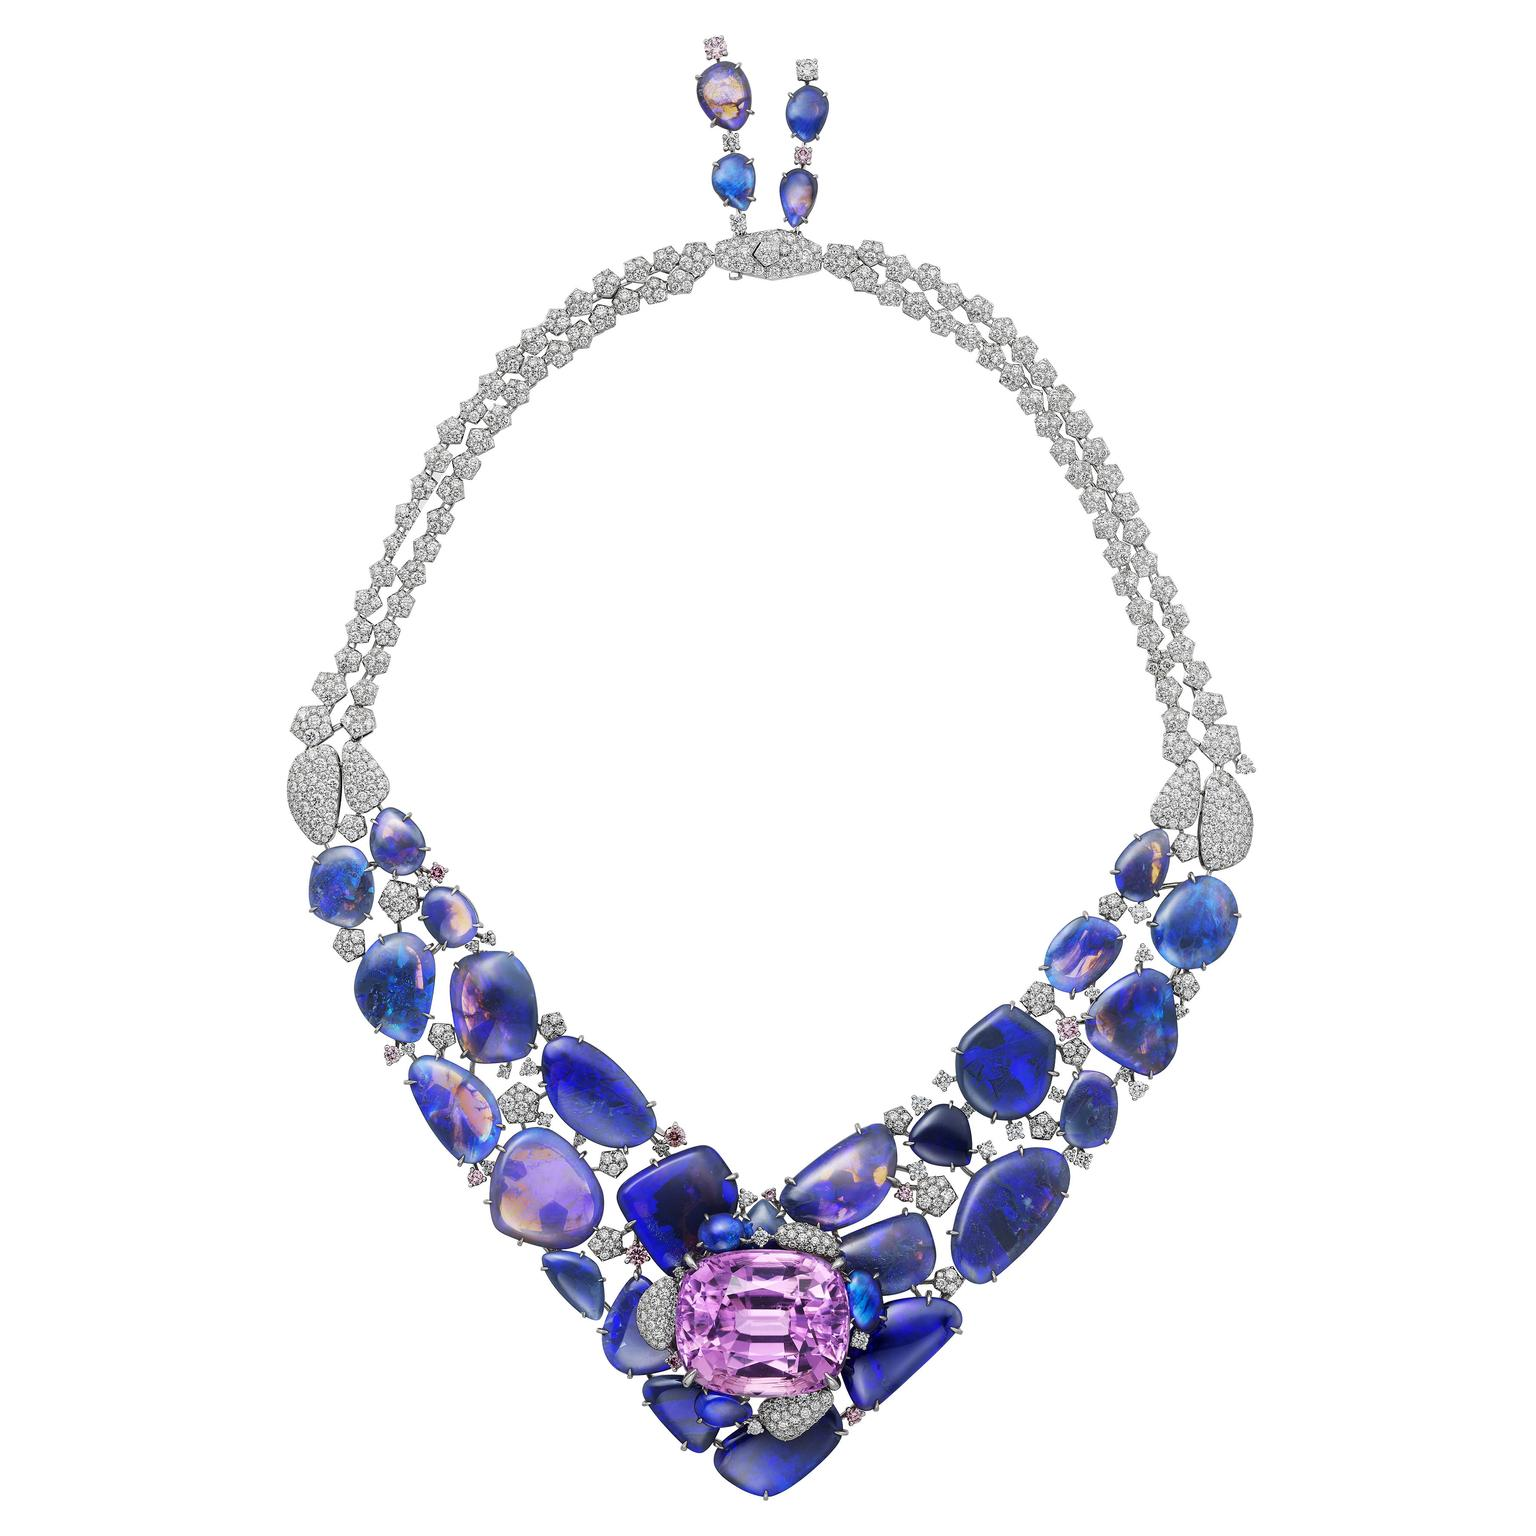 Cartier Hemis necklace photo